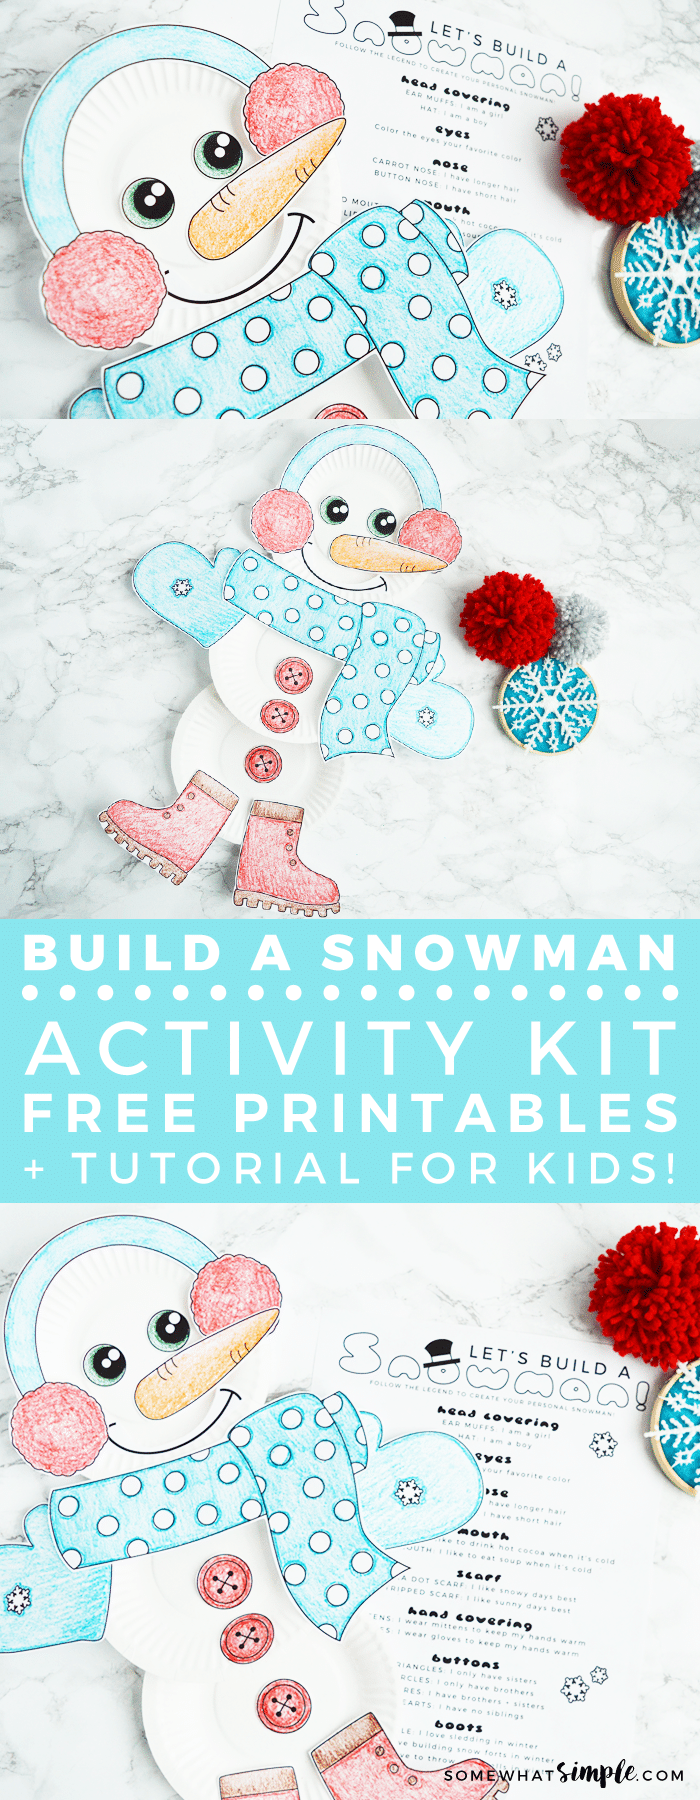 This FREE PRINTABLE Build A Snowman Activity Kit is a darling idea for kids of all ages!  Follow the legend, and they'll have a cute snowman that's just as special and unique as them! via @somewhatsimple